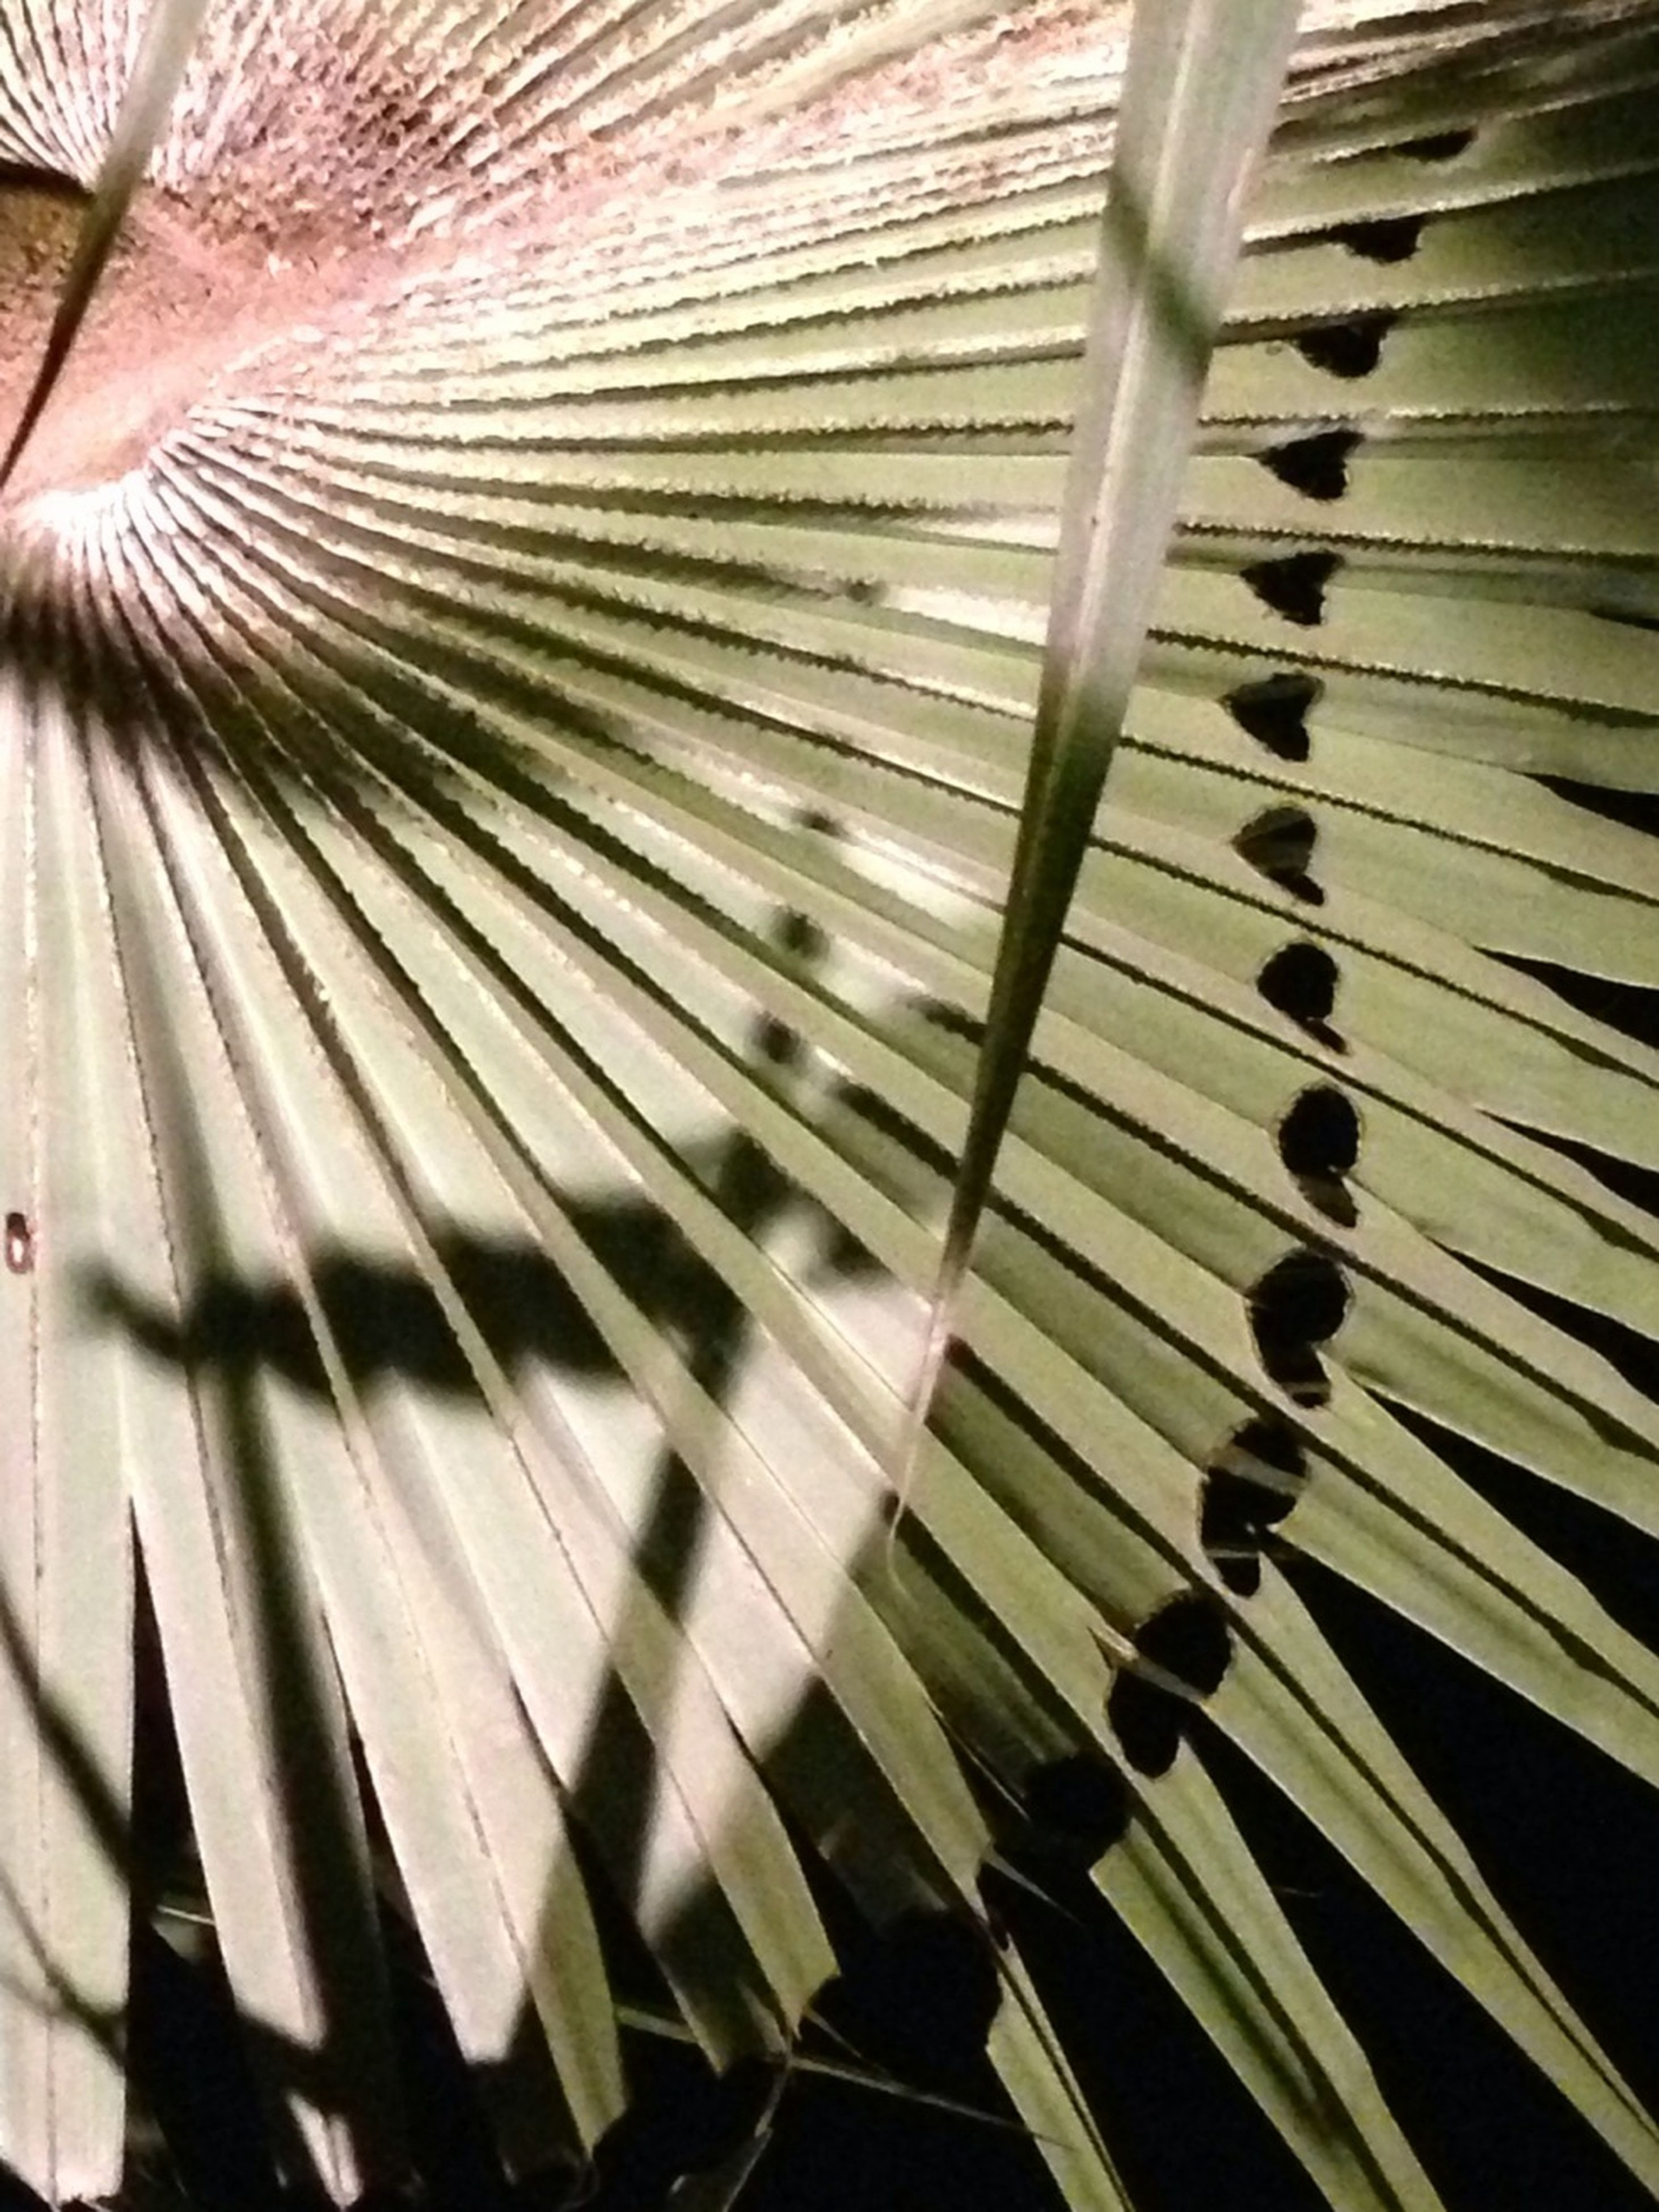 pattern, full frame, backgrounds, close-up, design, repetition, abstract, metal, textured, low angle view, indoors, striped, spiral, palm leaf, no people, detail, day, metallic, in a row, sunlight